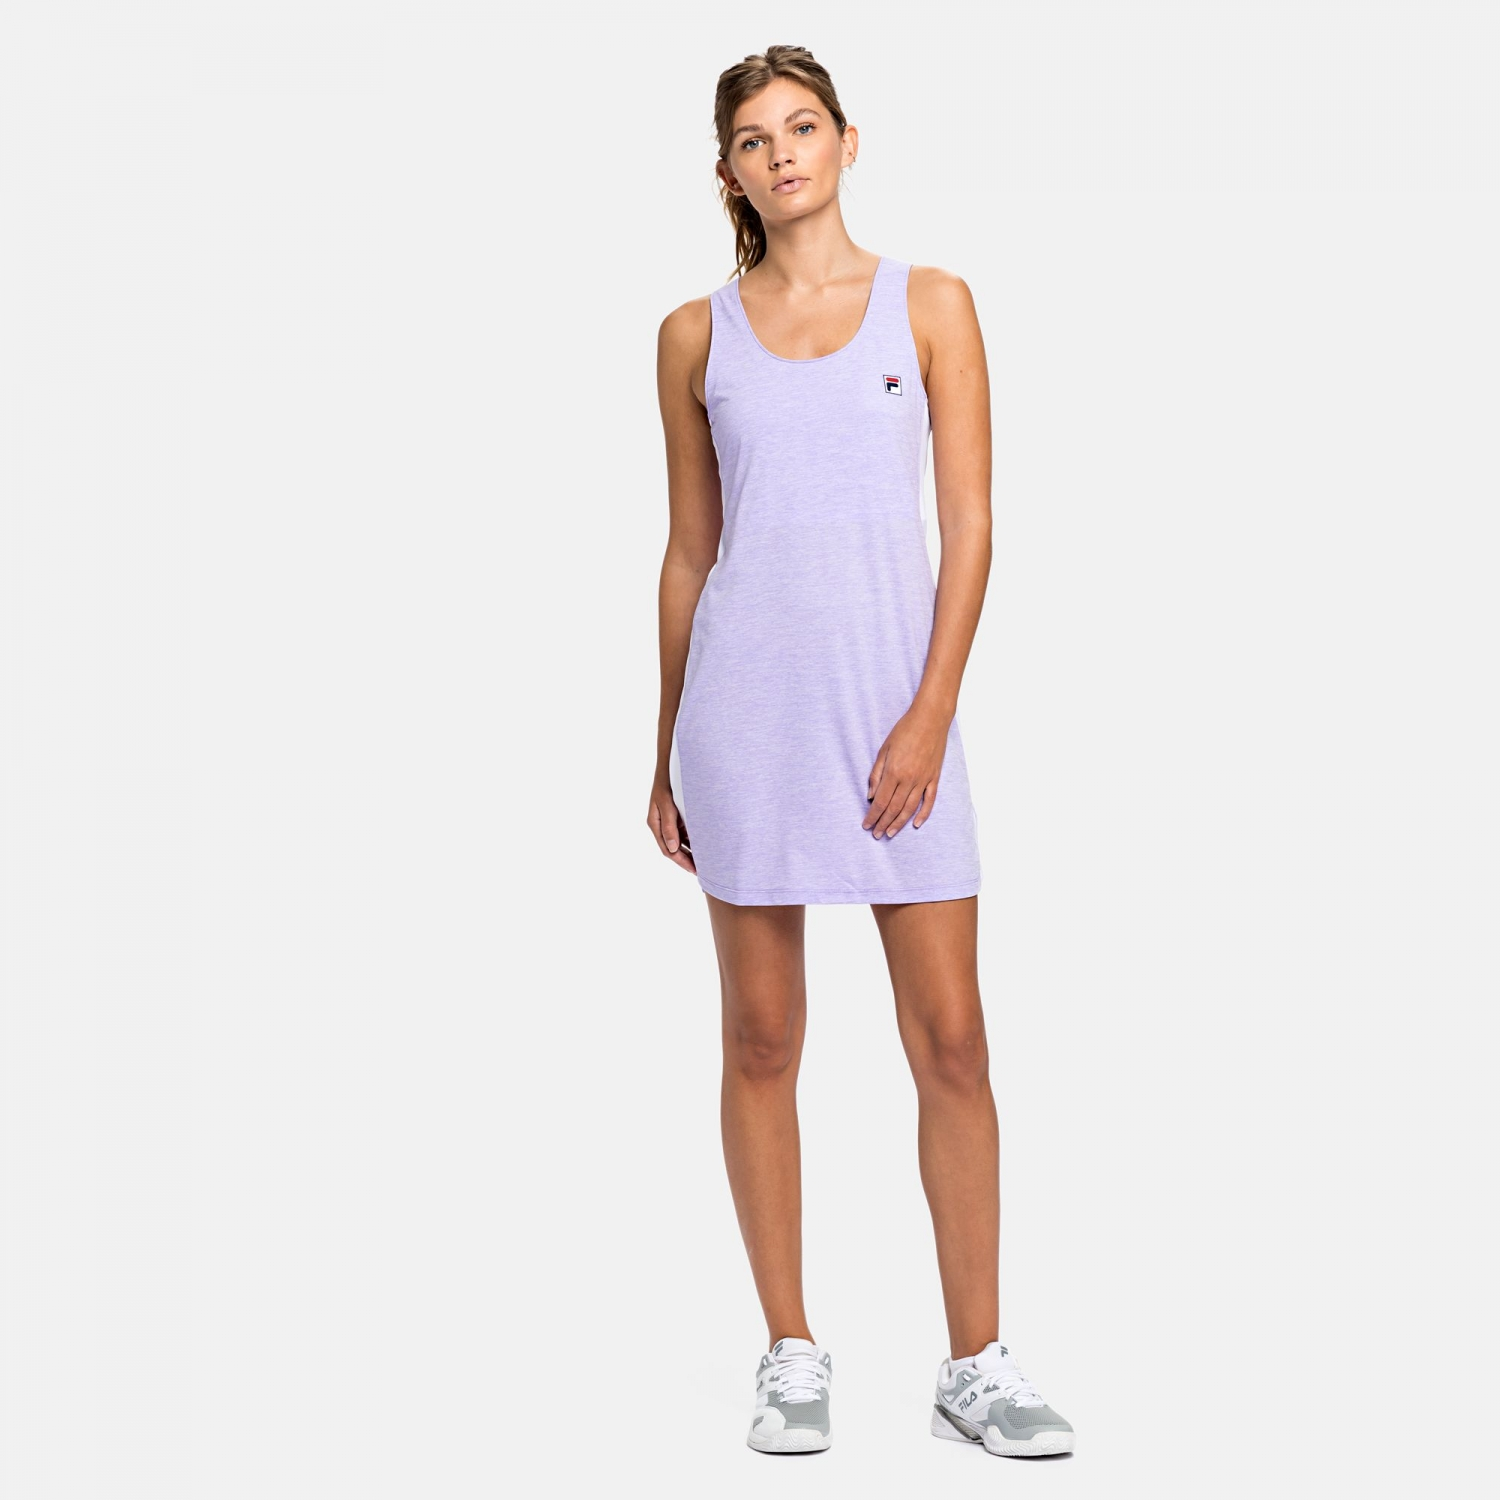 Fila Dress Yumi Bild 3